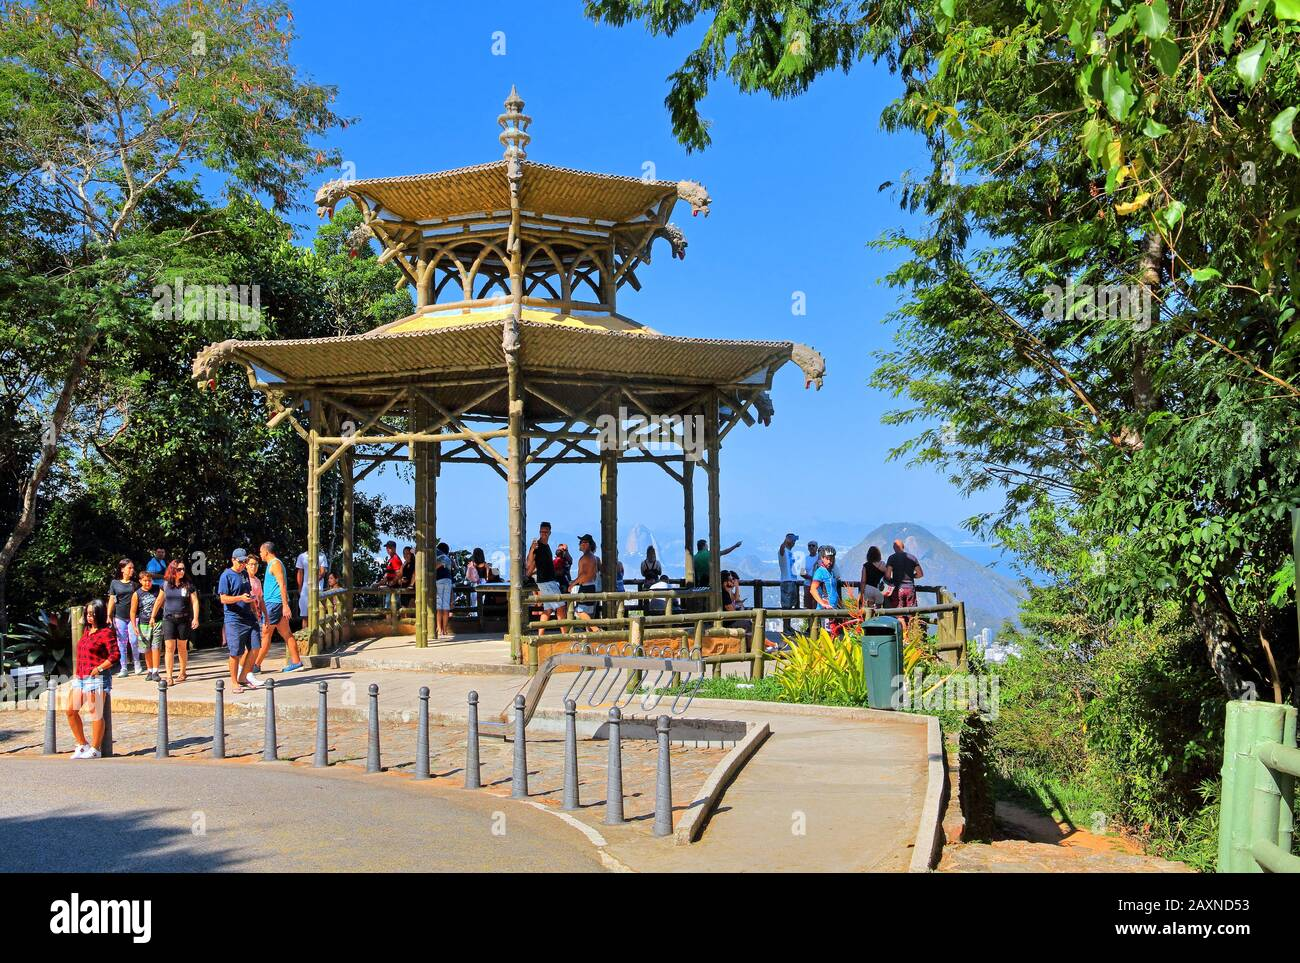 Chinese pavilion with lookout Vista Chinesa in the Tijuca national park, Rio de Janeiro, Brazil Stock Photo